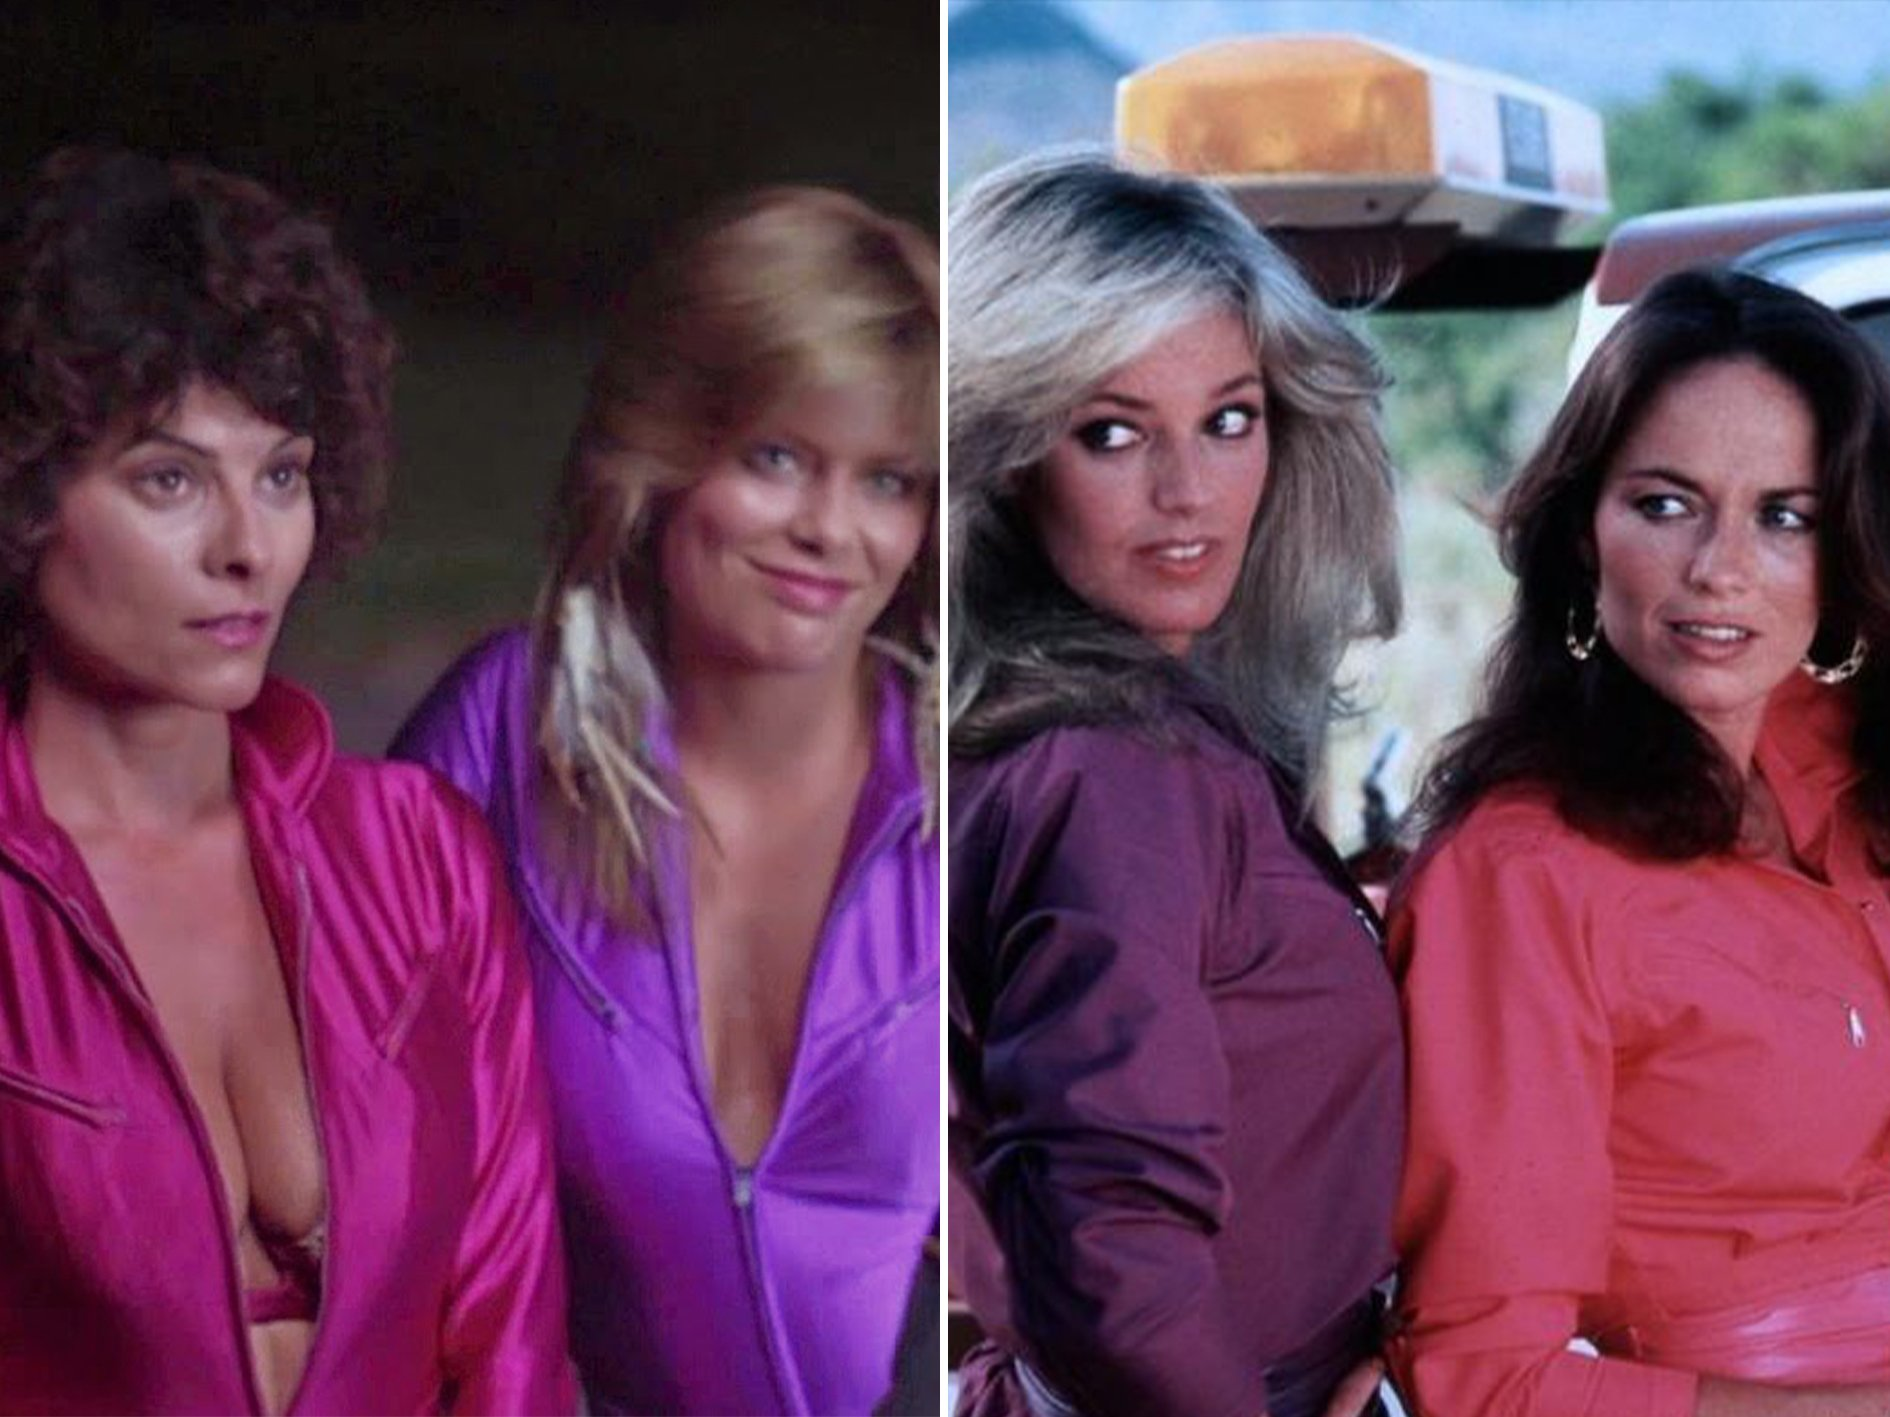 Cannonball Run Lamborghini Babes 20 Fun Facts You Didn't Know About The Cannonball Run Films